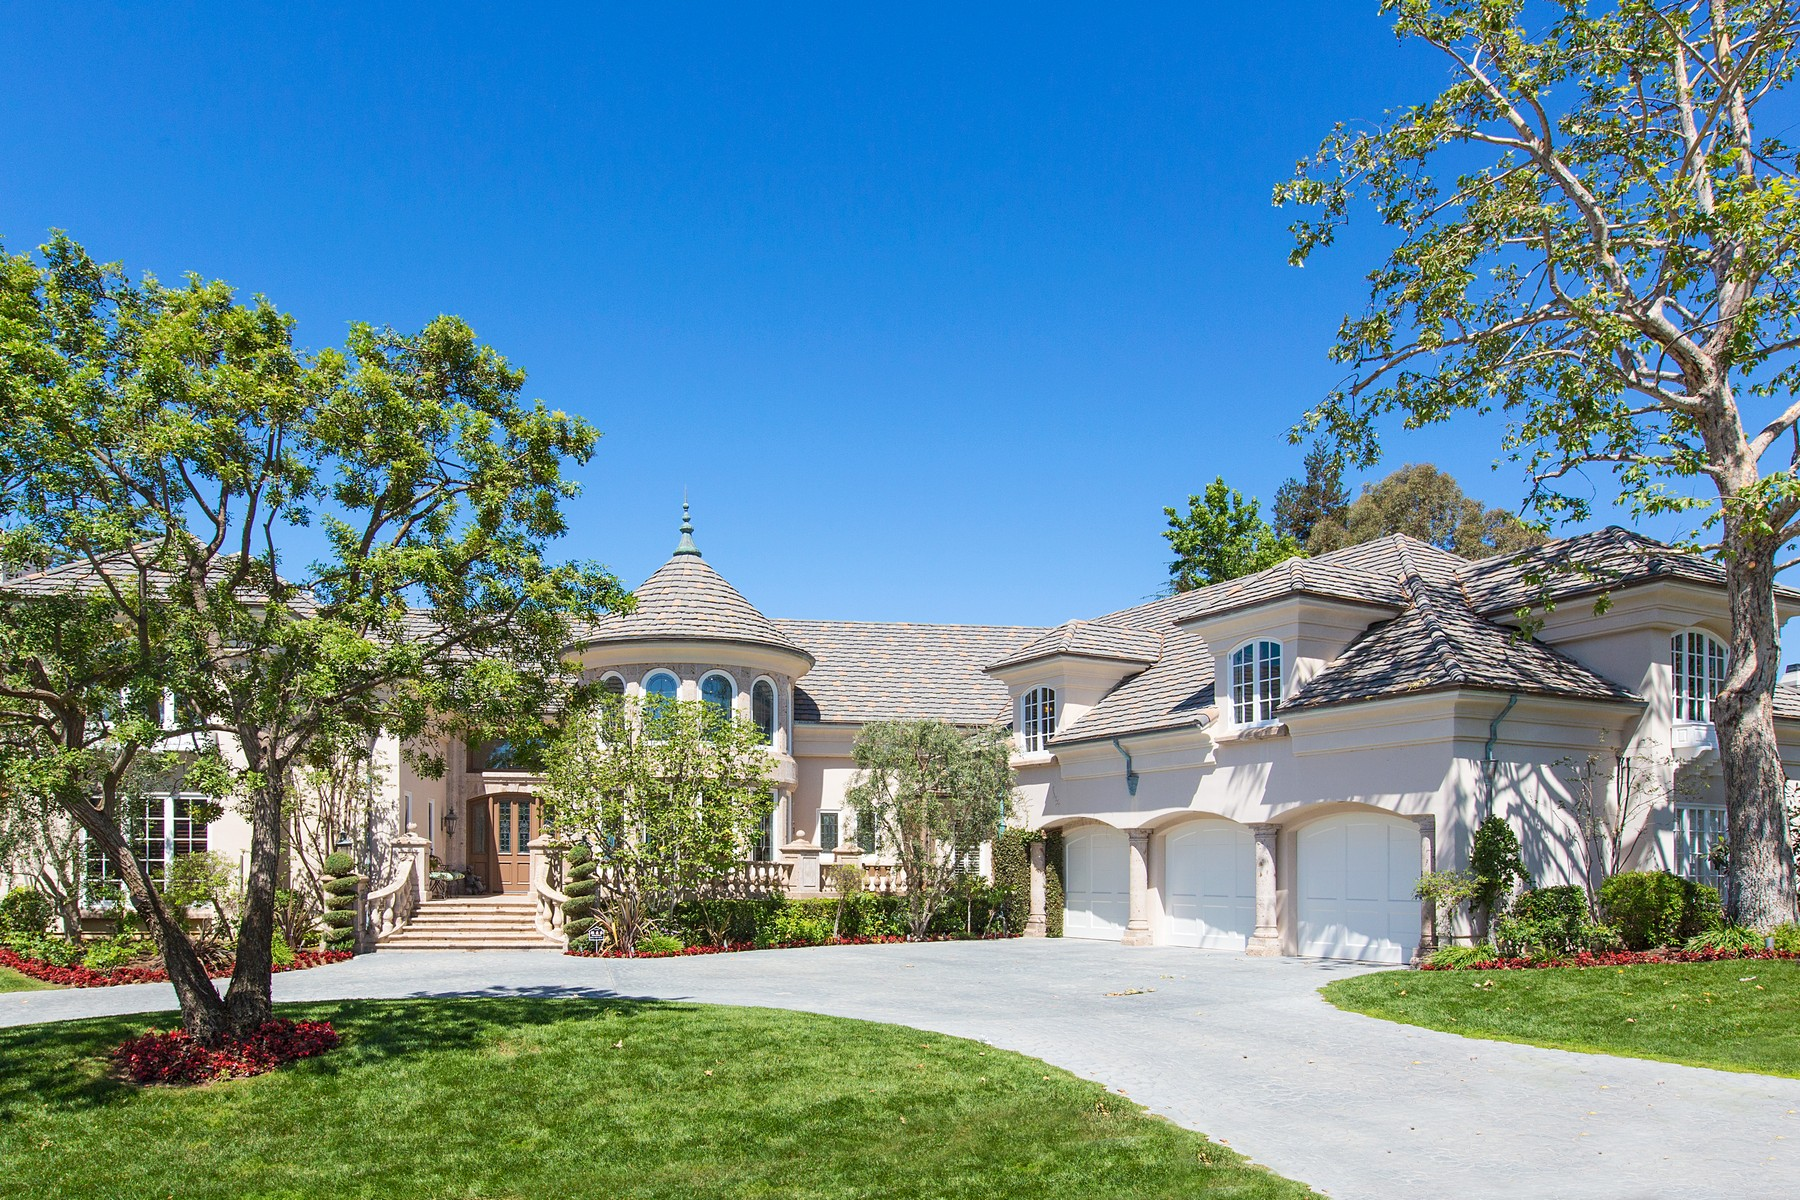 Villa per Vendita alle ore Summit View Drive 4916 Summit View Drive Westlake Village, California, 91362 Stati Uniti